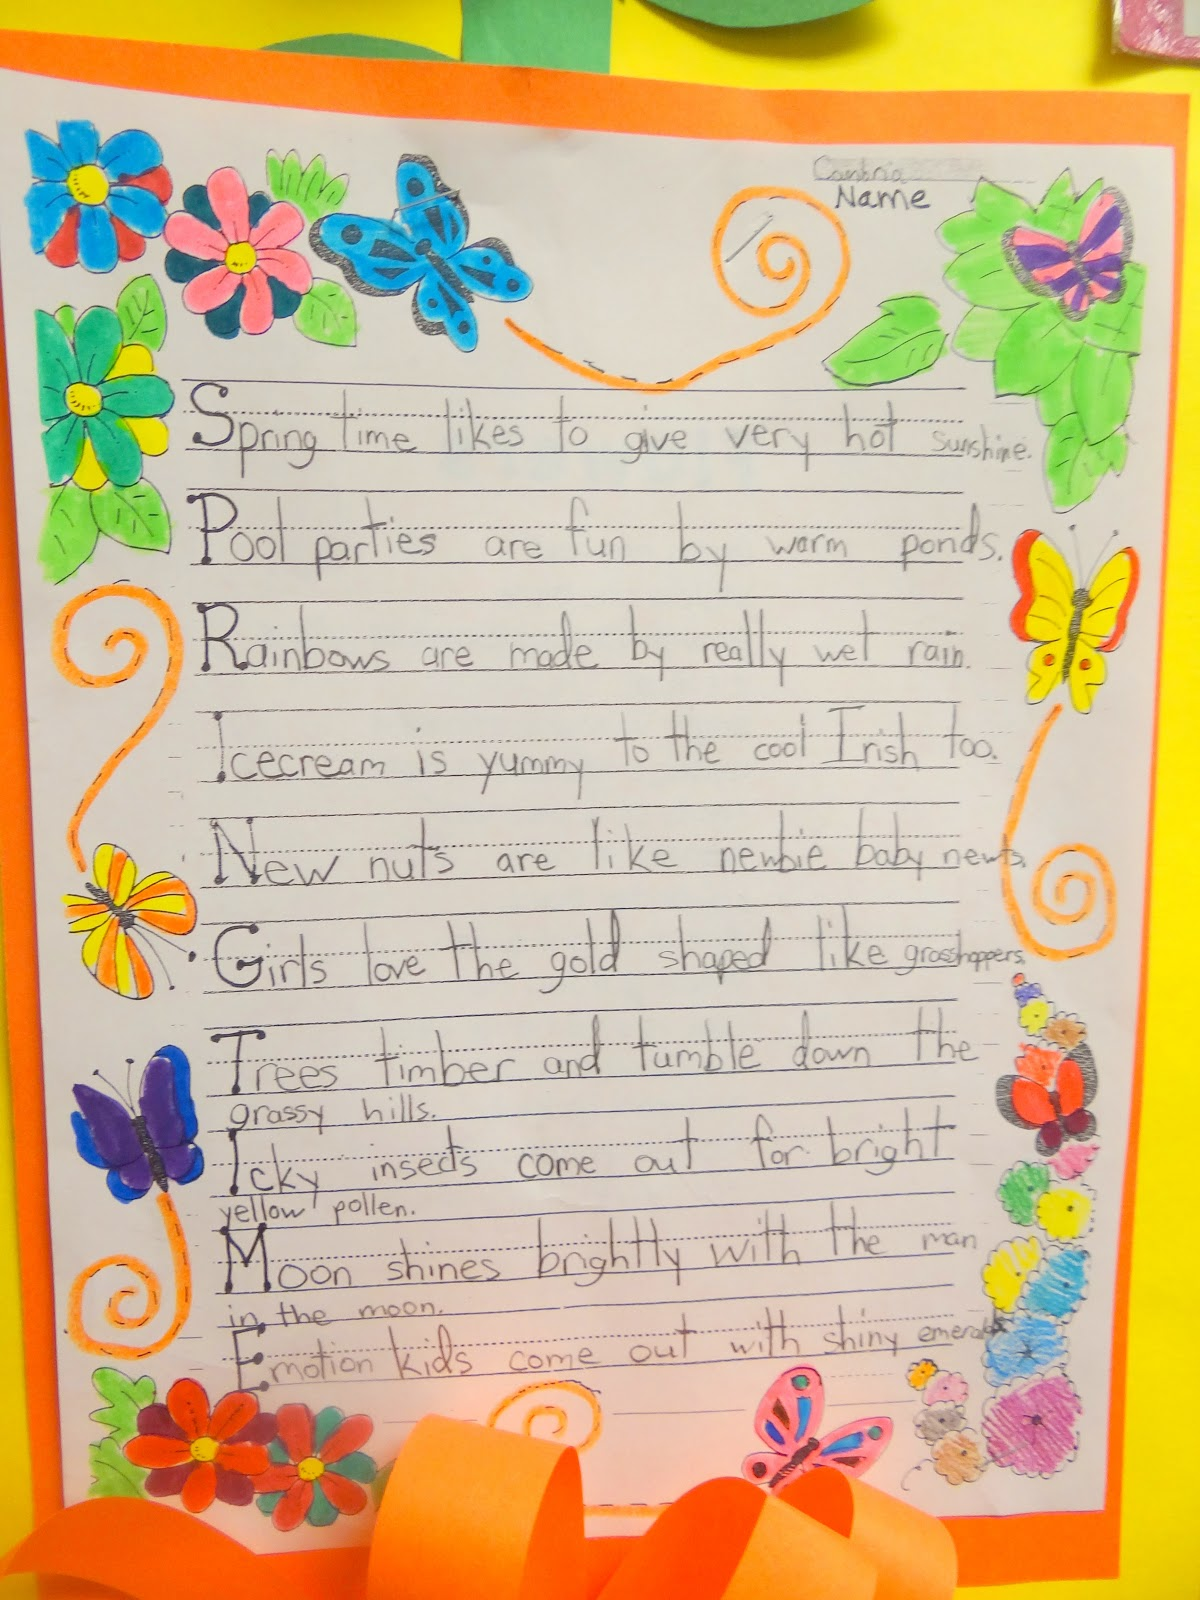 spring season essay for kids spring crafts enchanted learning  patties classroom springtime acrostic poems and pom pom flowers wednesday 24 2013 essay spring season